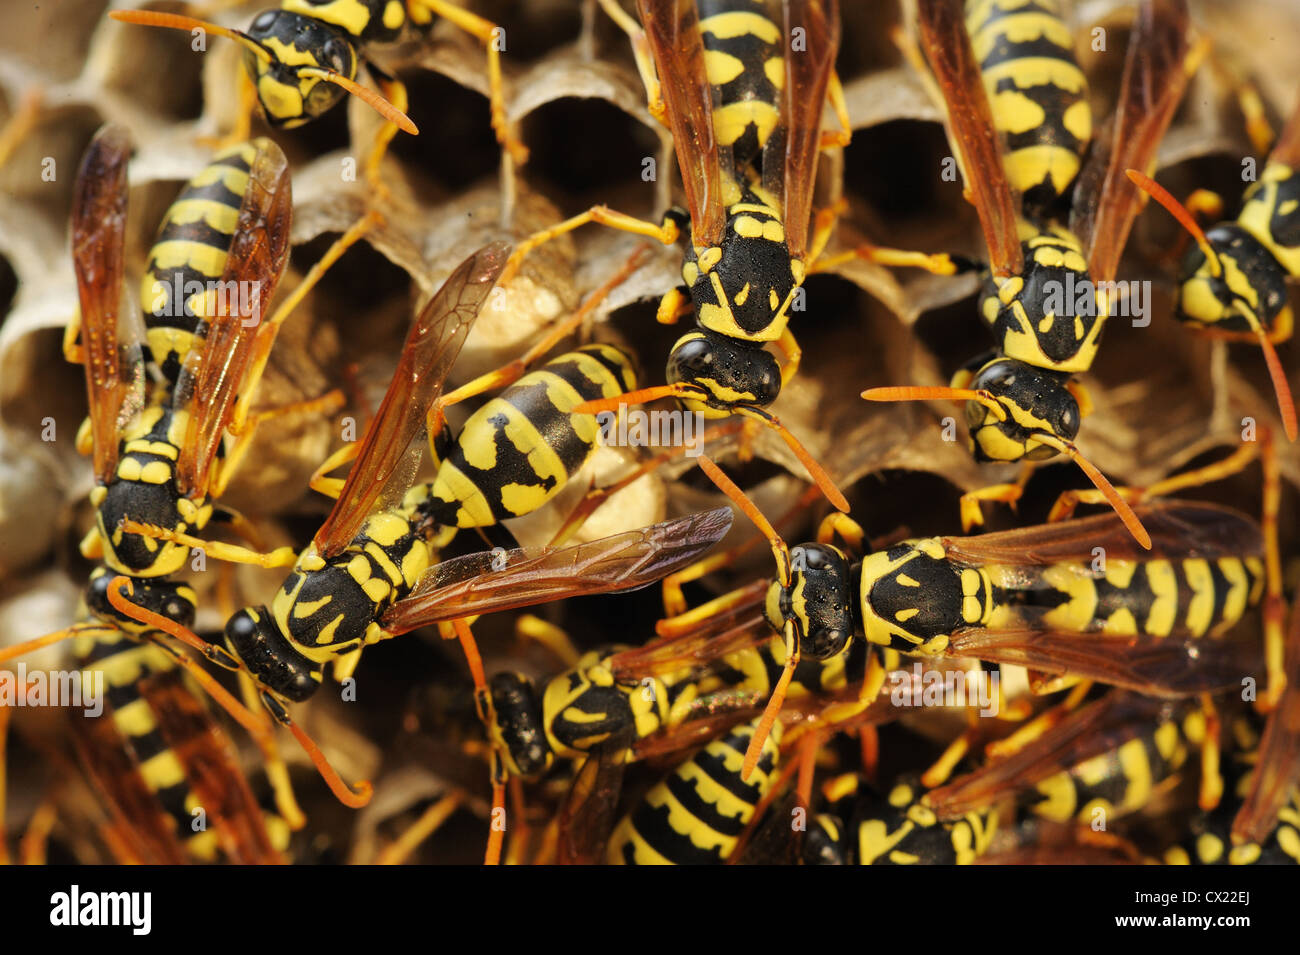 Wasps in the nest among the dry grass in Israel - Stock Image